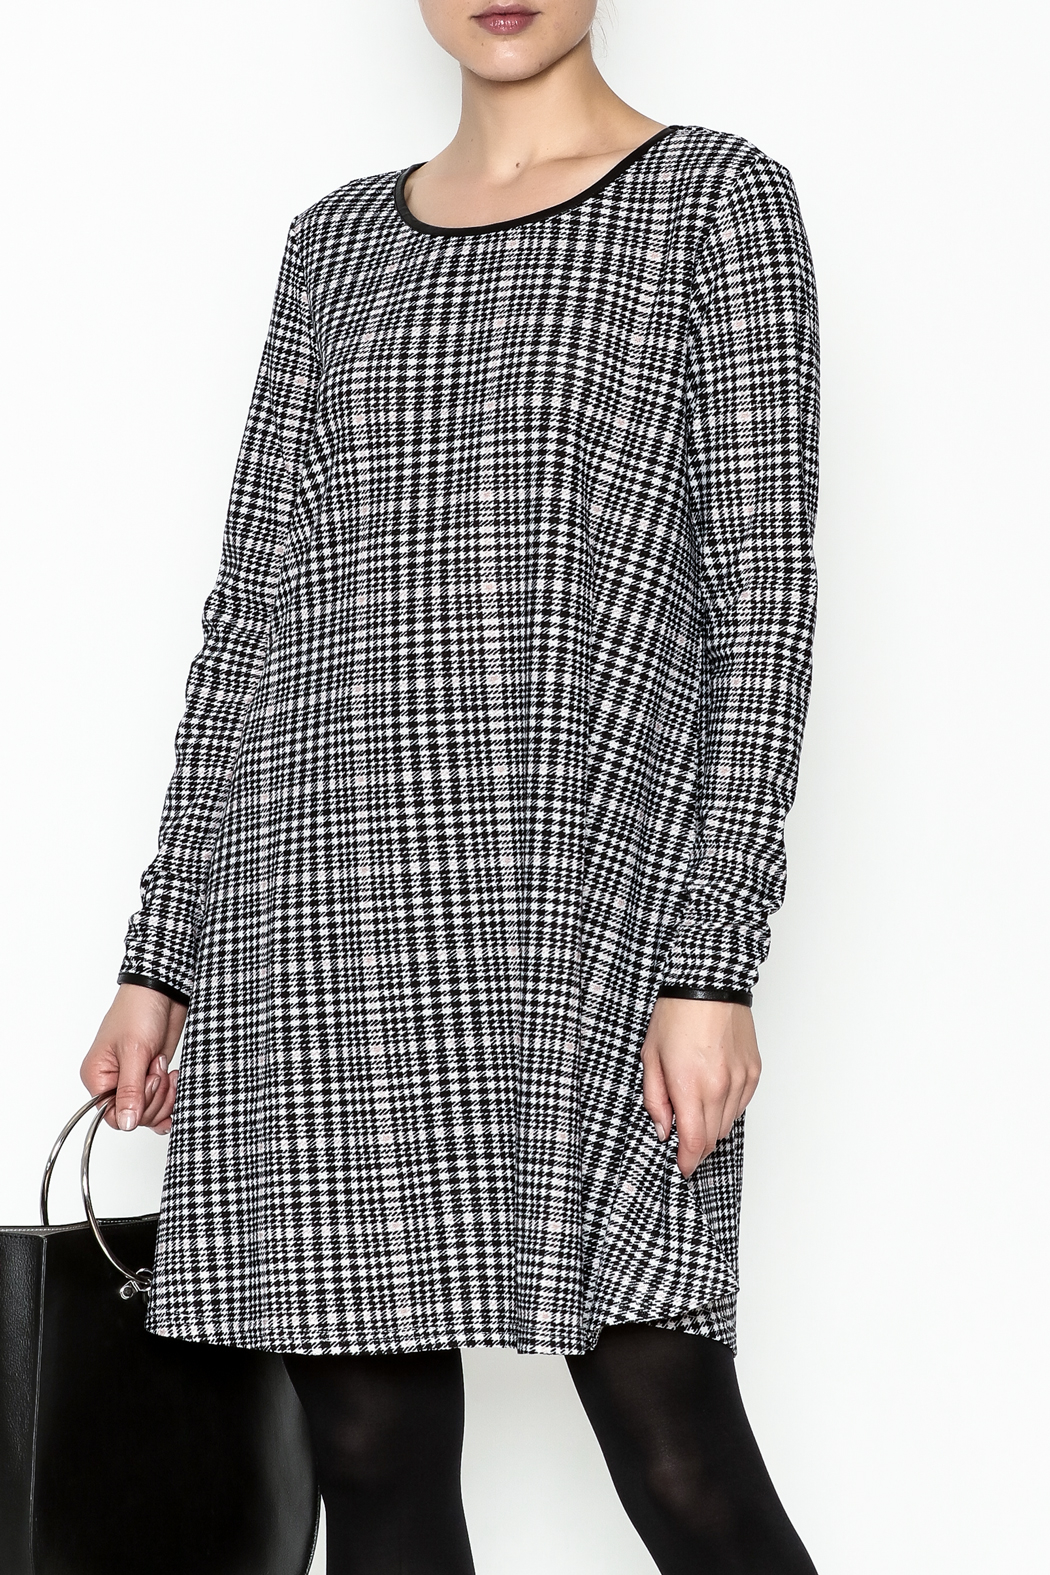 Charlie Paige Houndstooth Check Dress - Main Image